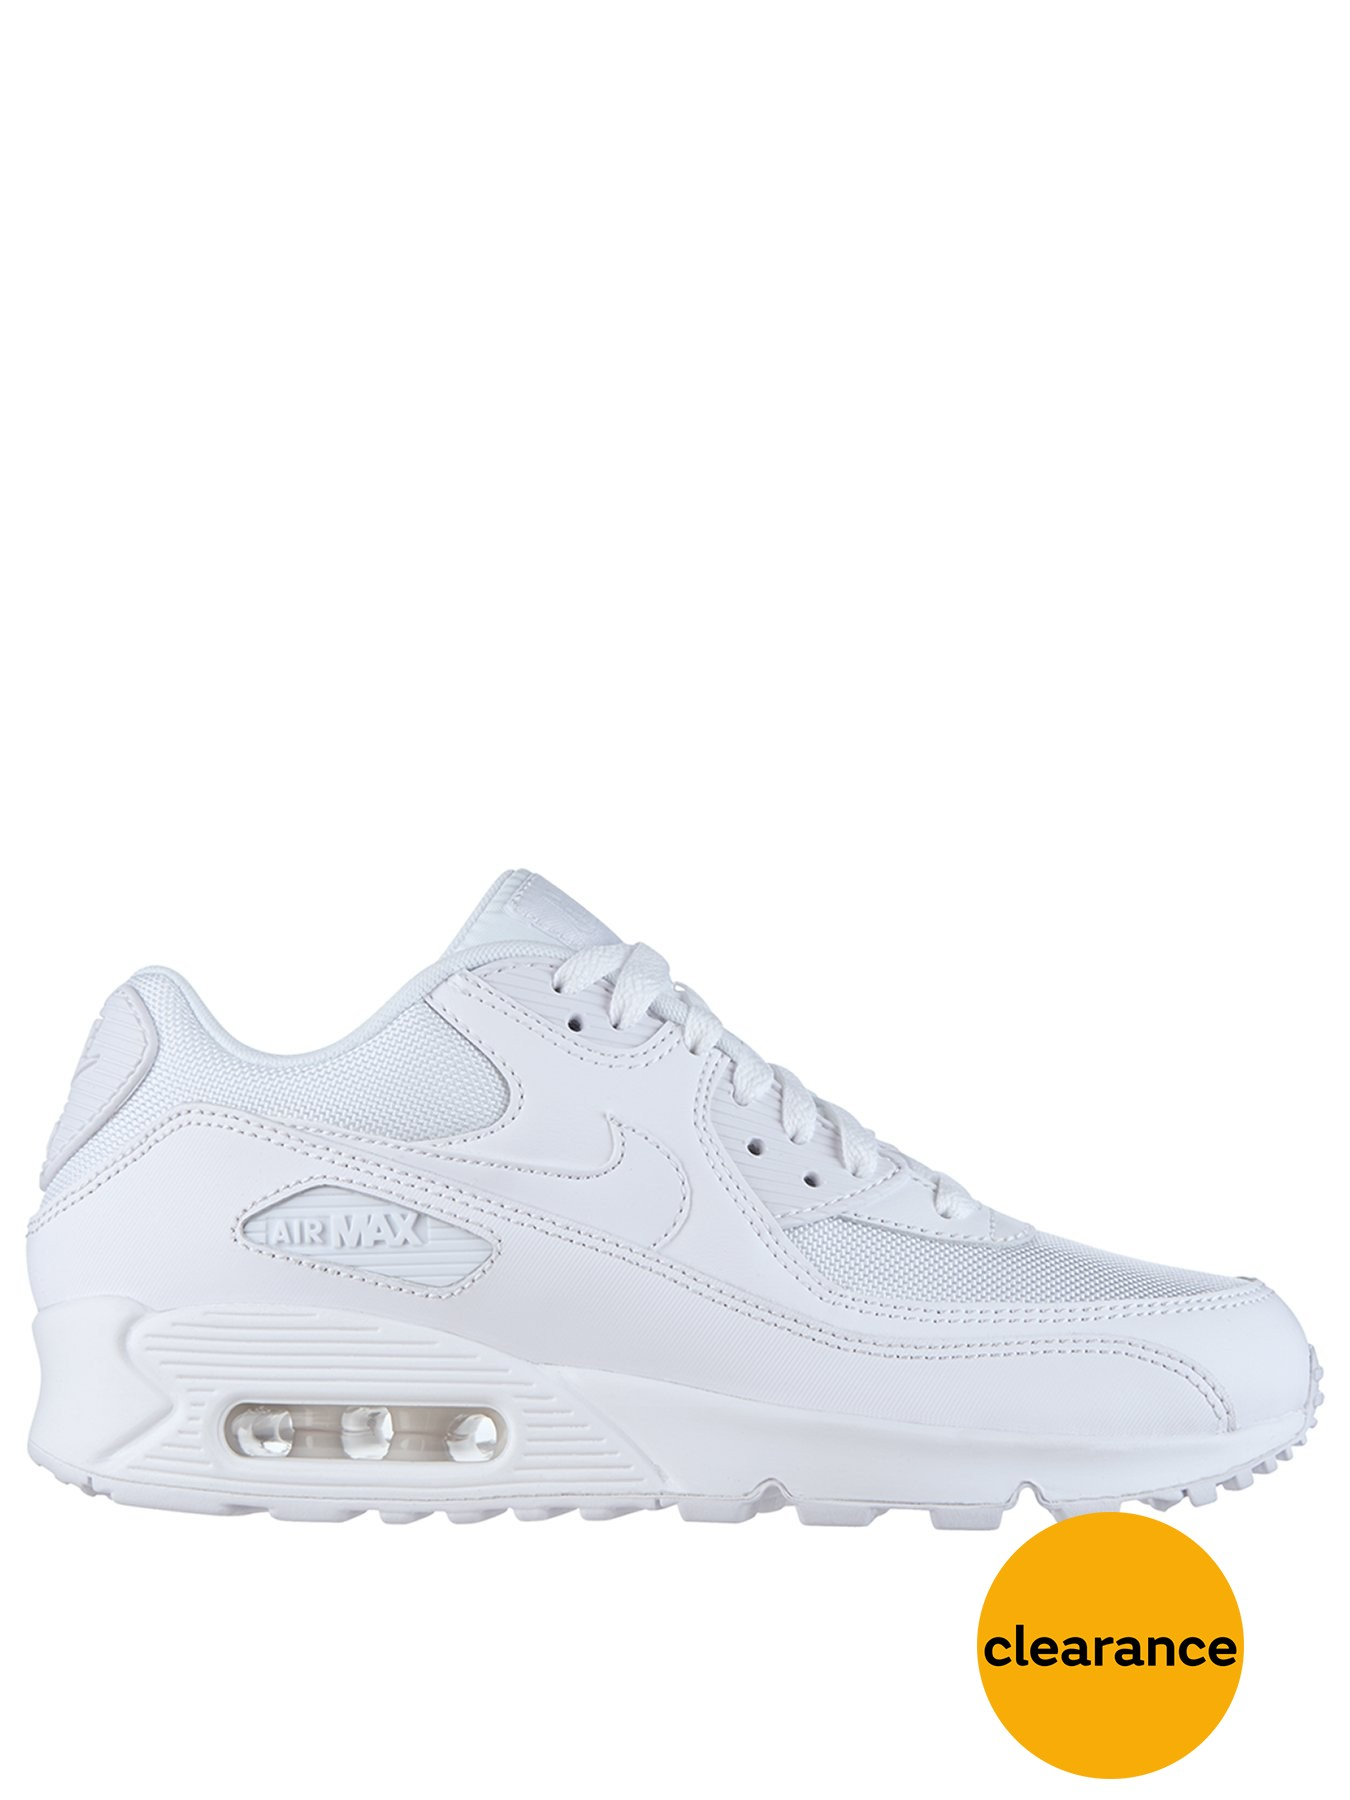 Nike Air Max 90 Essential Shoe Triple White 1600015429 Men's Shoes Nike Trainers